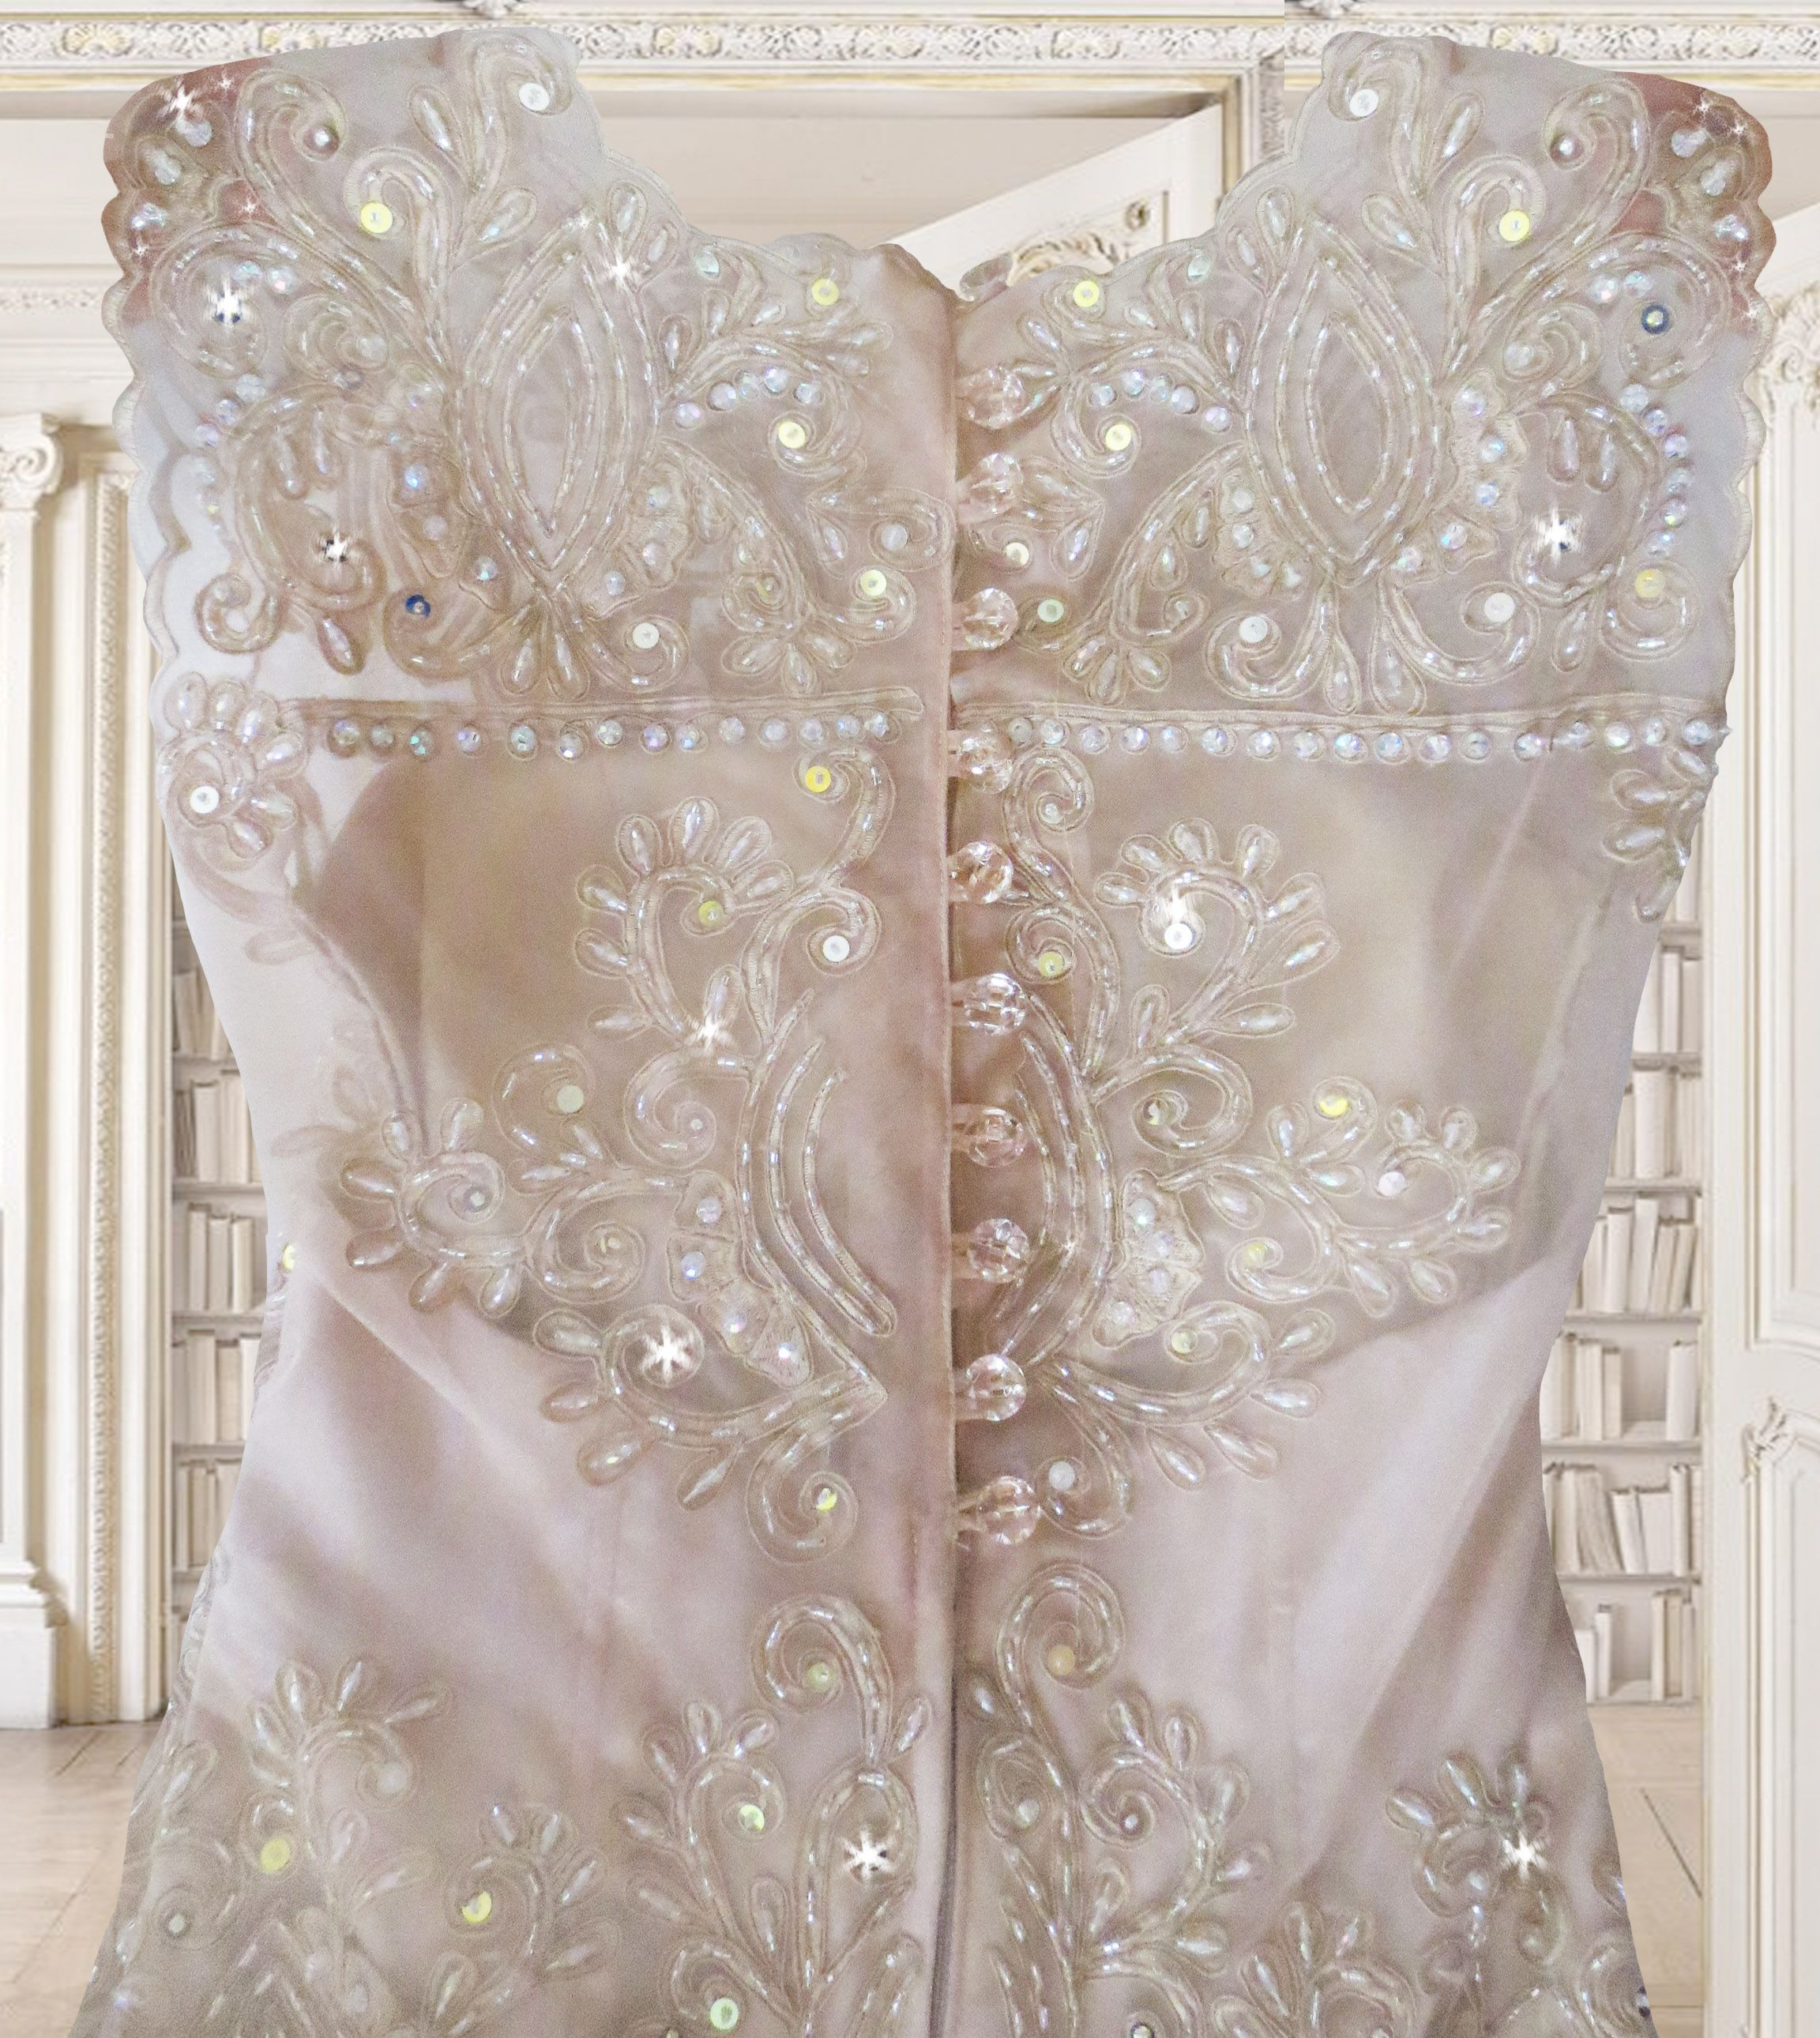 Wedding Gown Manila: Pin By Gownforent Manila On Wedding Gown Manila Quezon